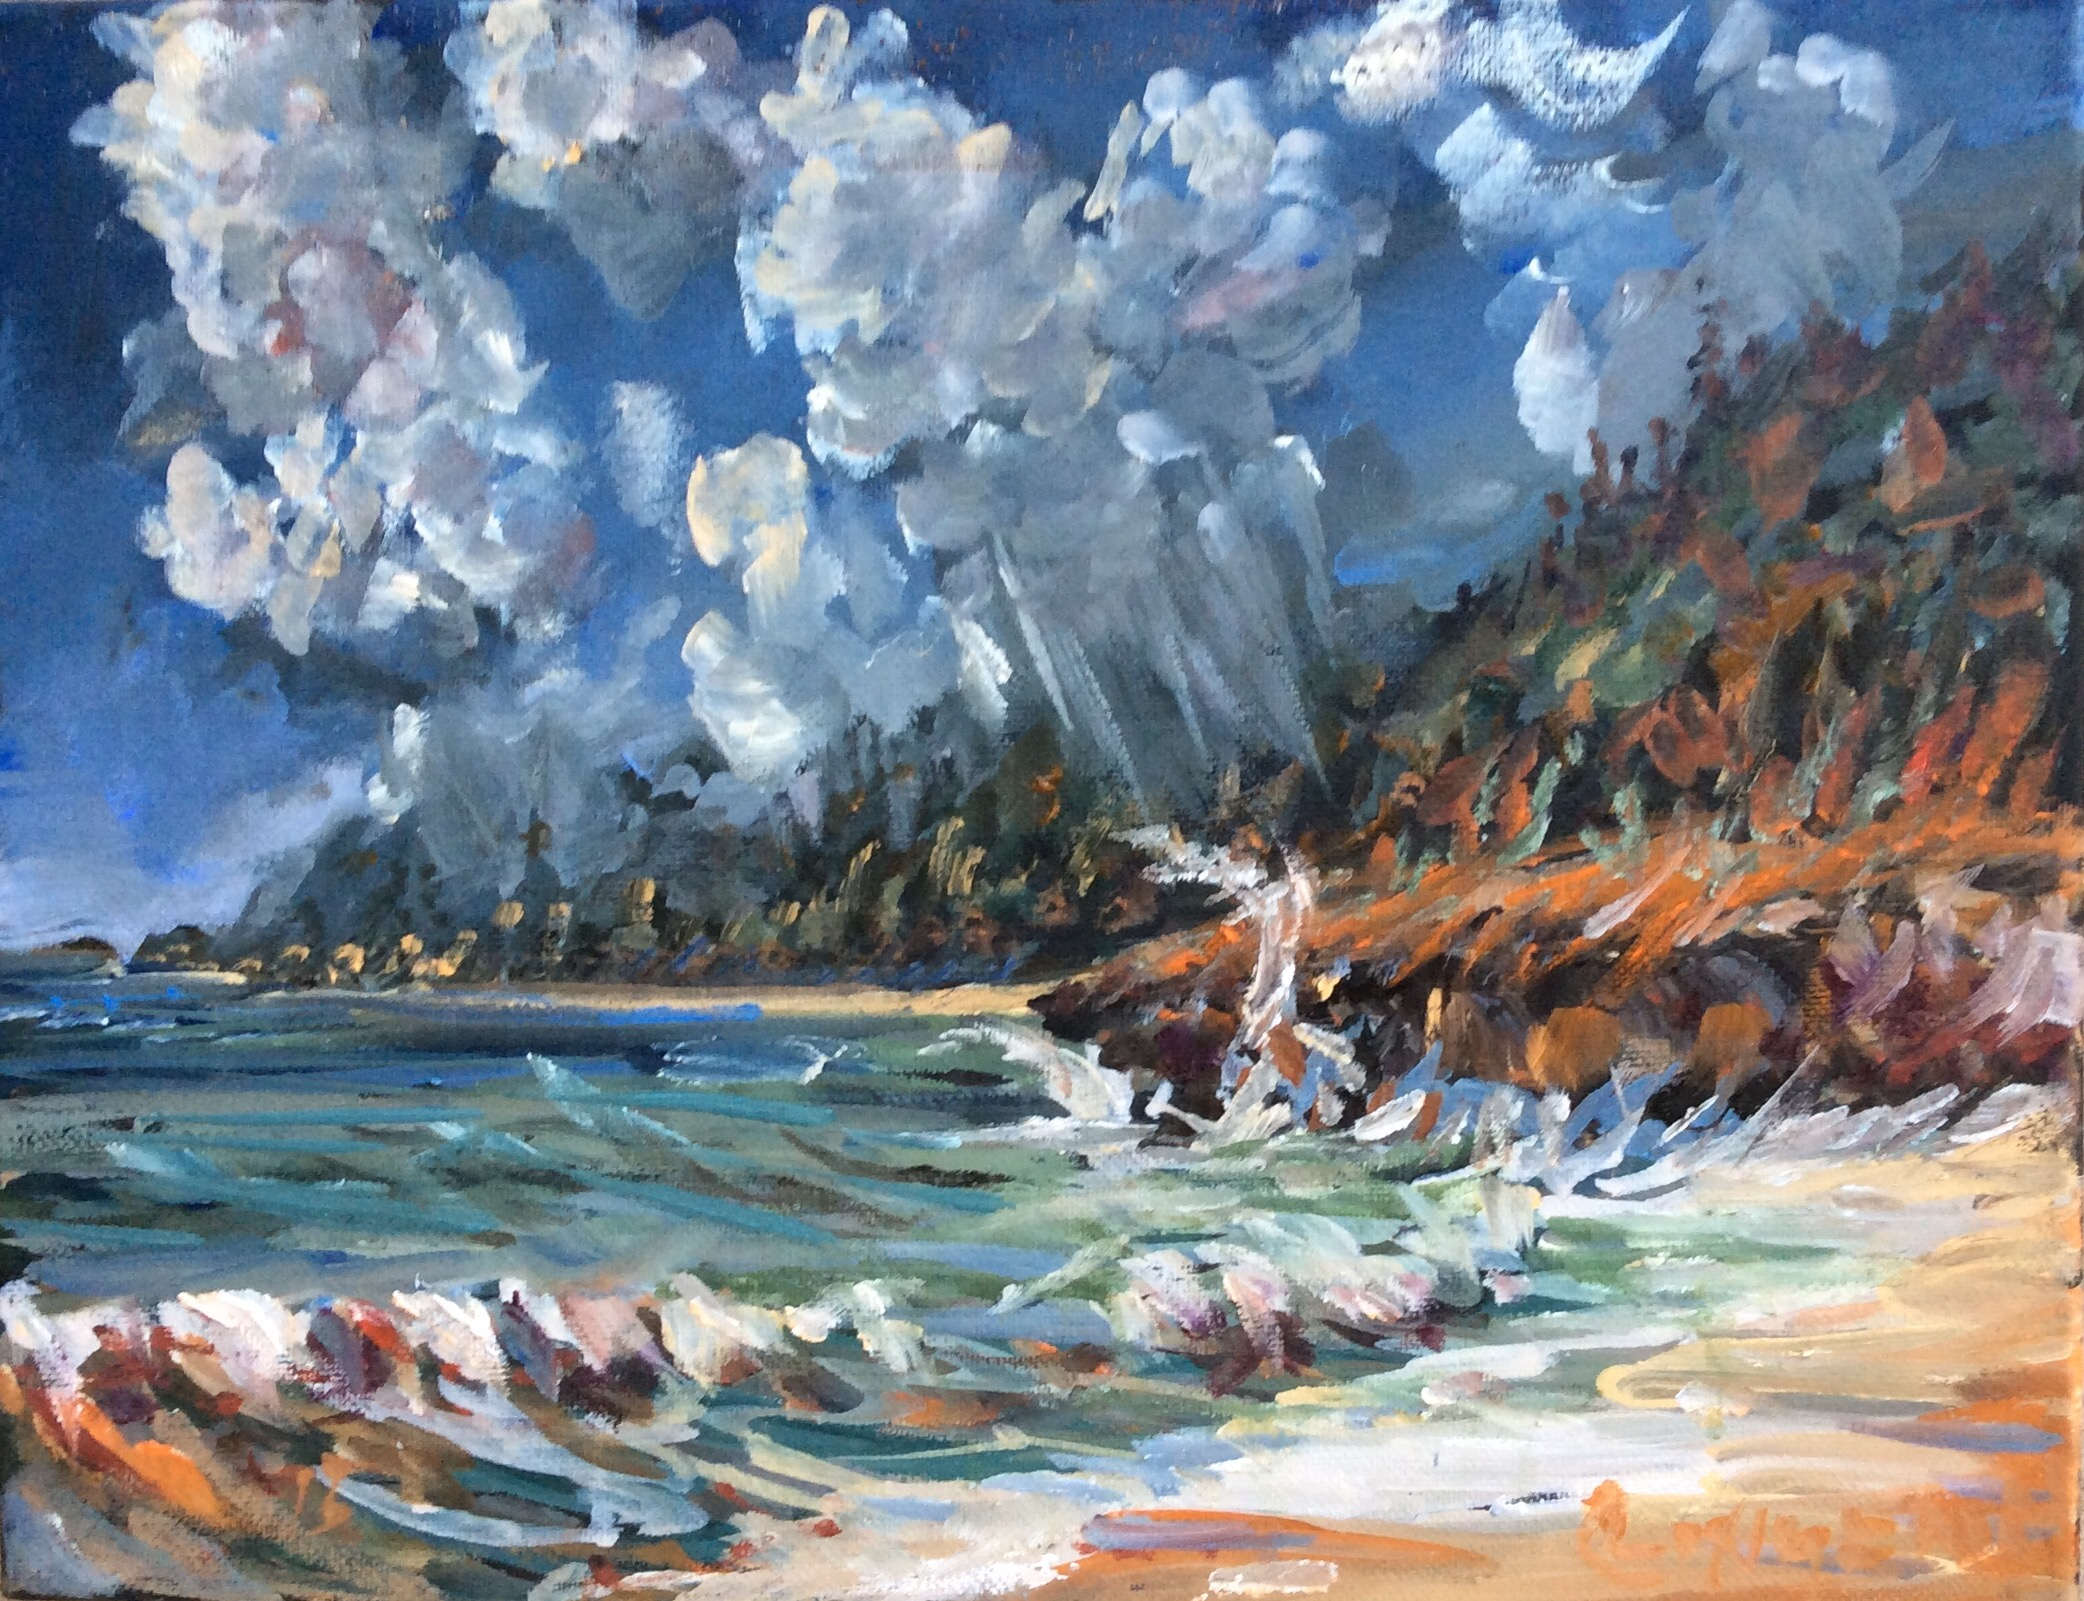 Hawaii  10 x 16 inches, oil on canvas